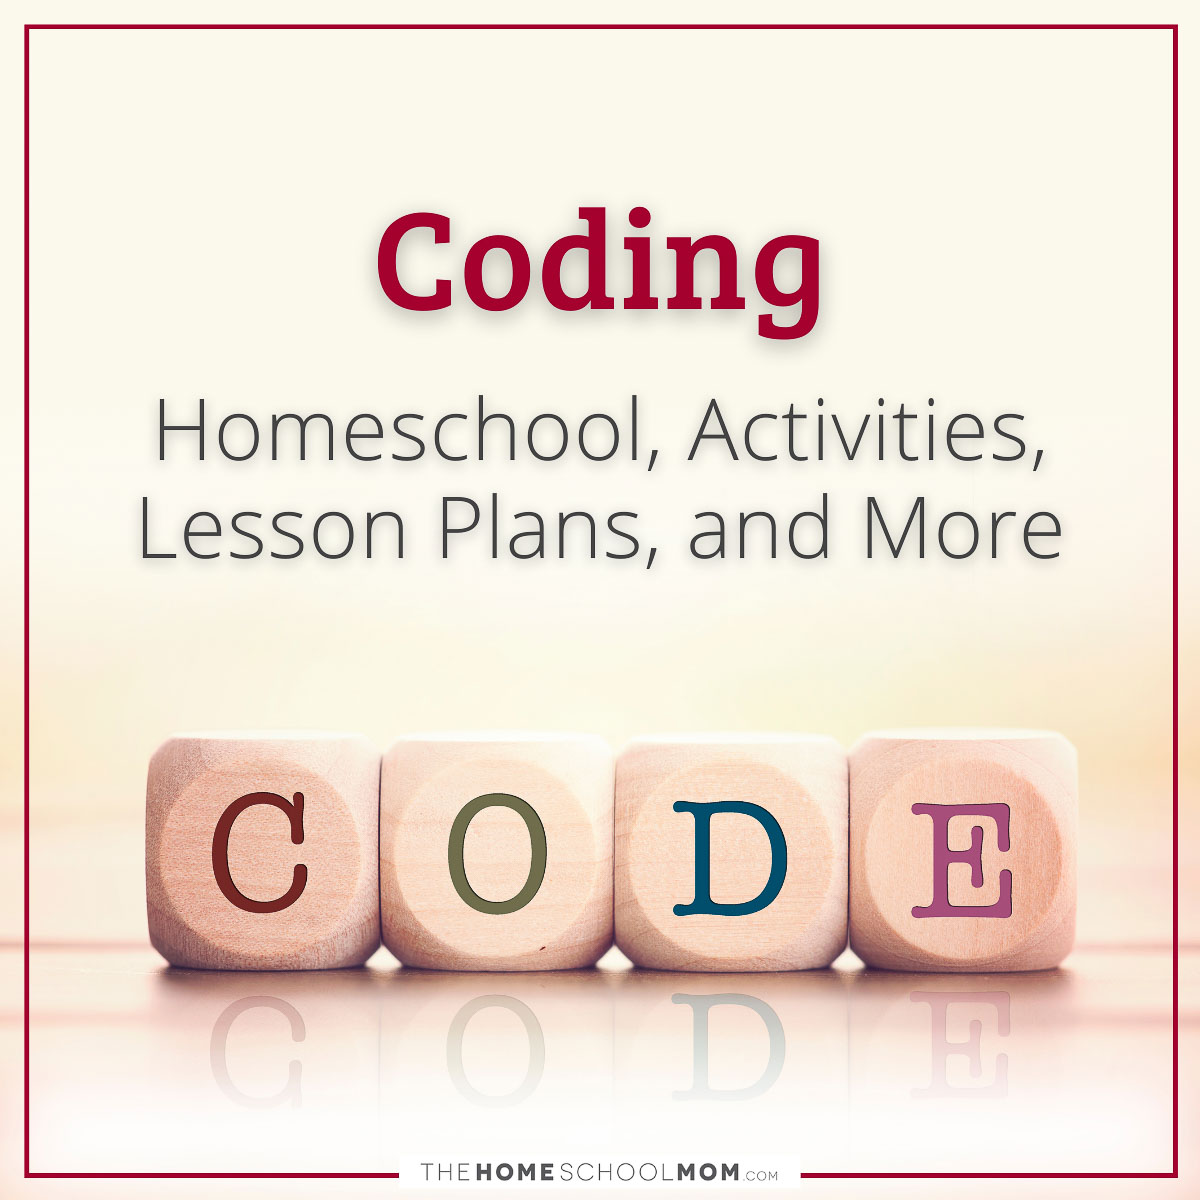 Coding: Homeschool, Activities, Lesson Plans, and More